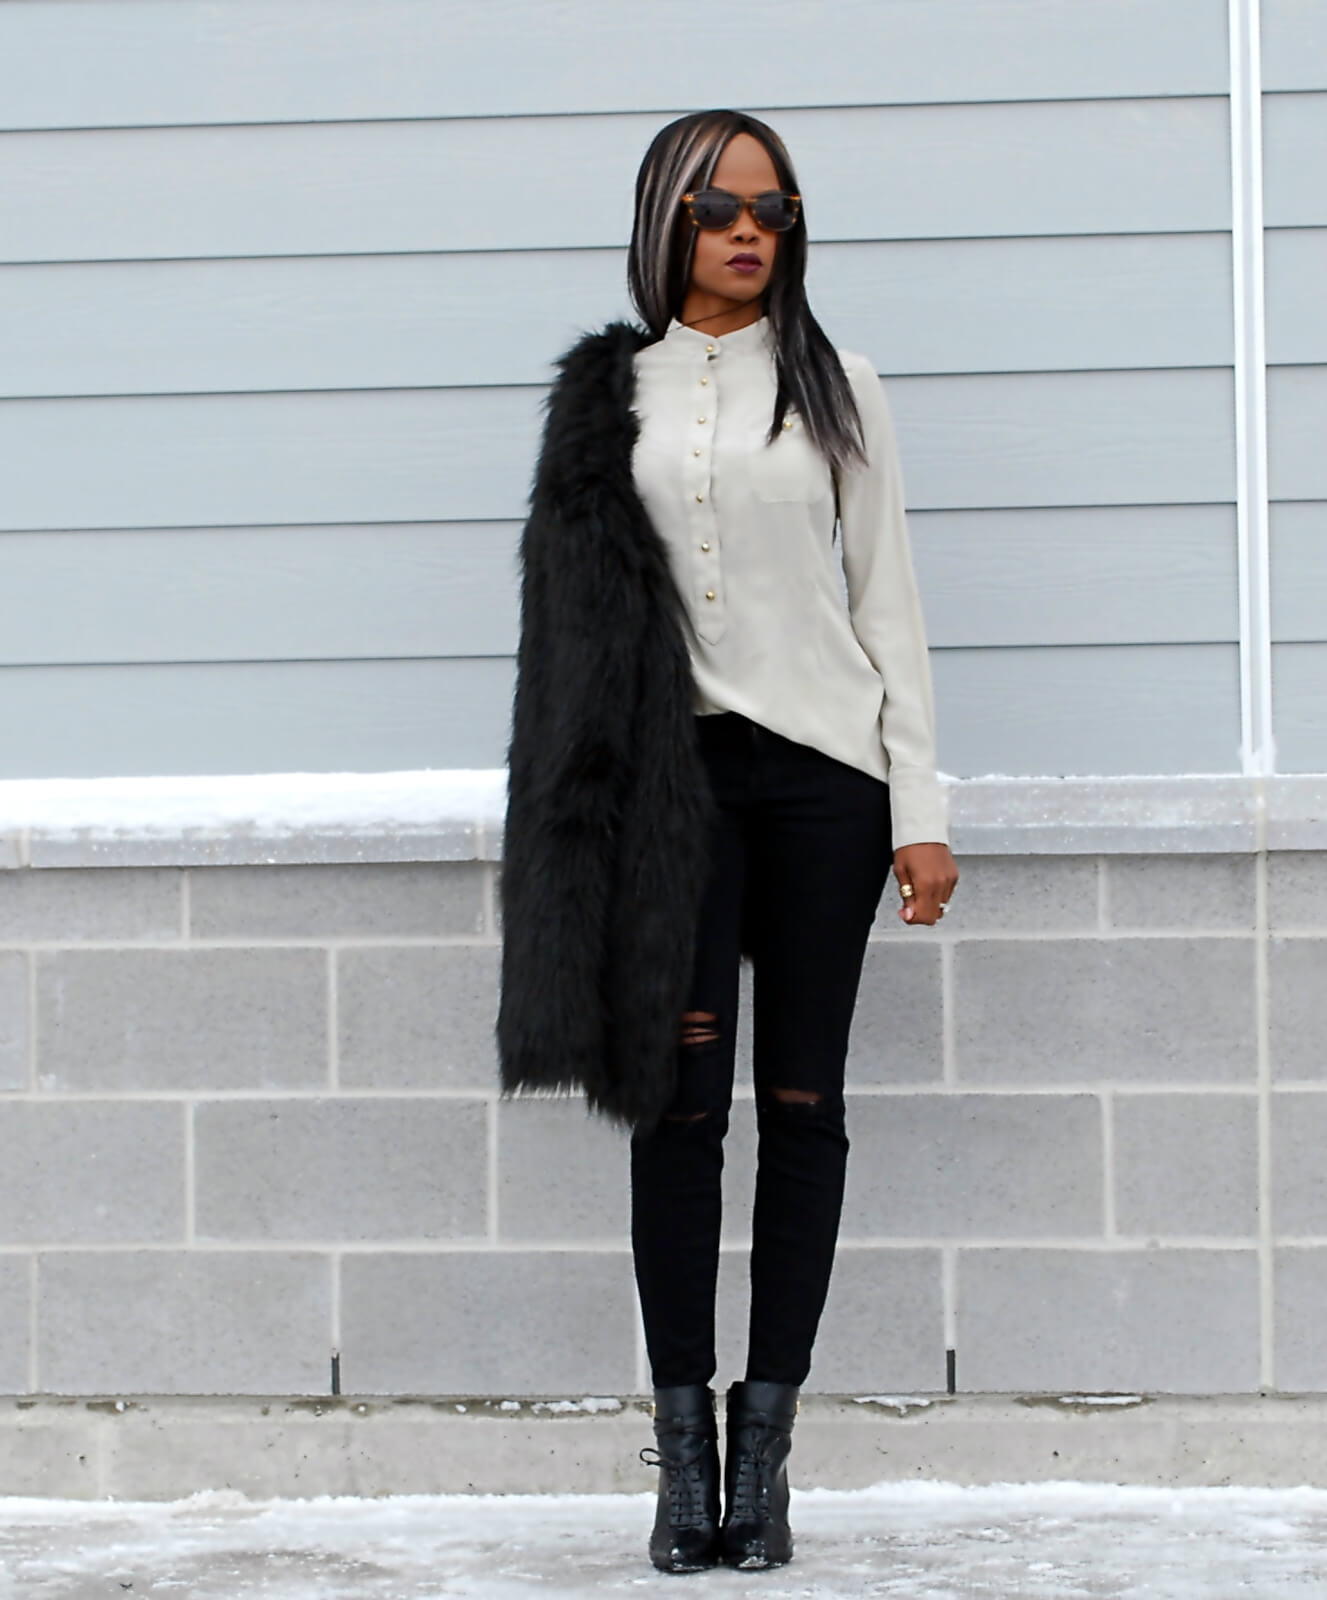 Black faux fur coat, faux fur, black faux fur jacket, ripped denim, distressed denim, current/elliott denim, button up top, button down top, black booties, winnipeg fashion blogger, fashion blogger style, african blogger